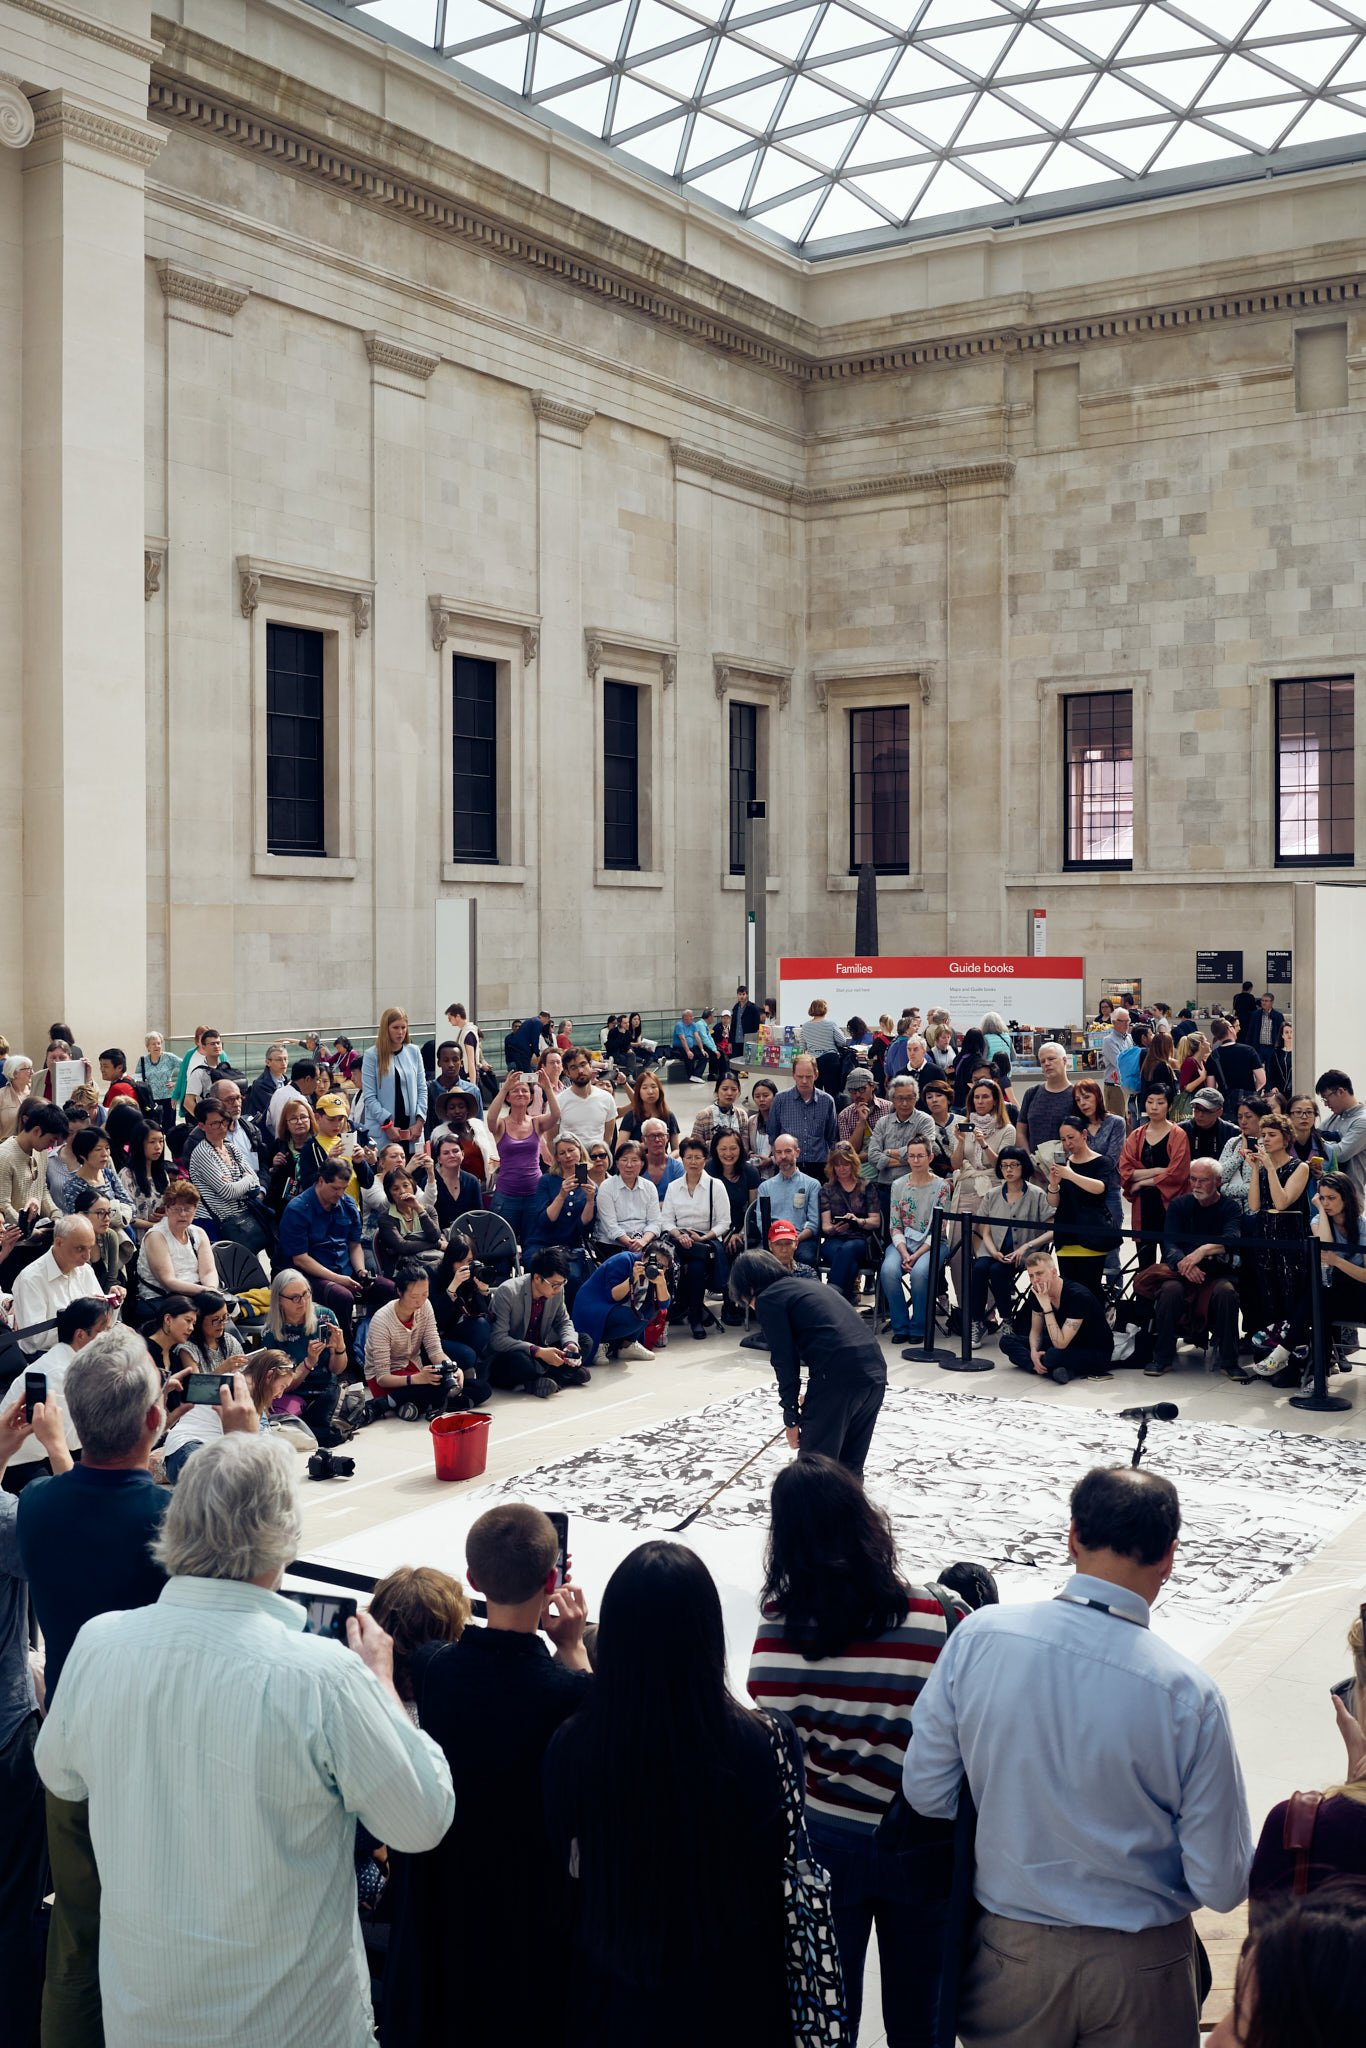 Calligraphy live performance at the British Museum